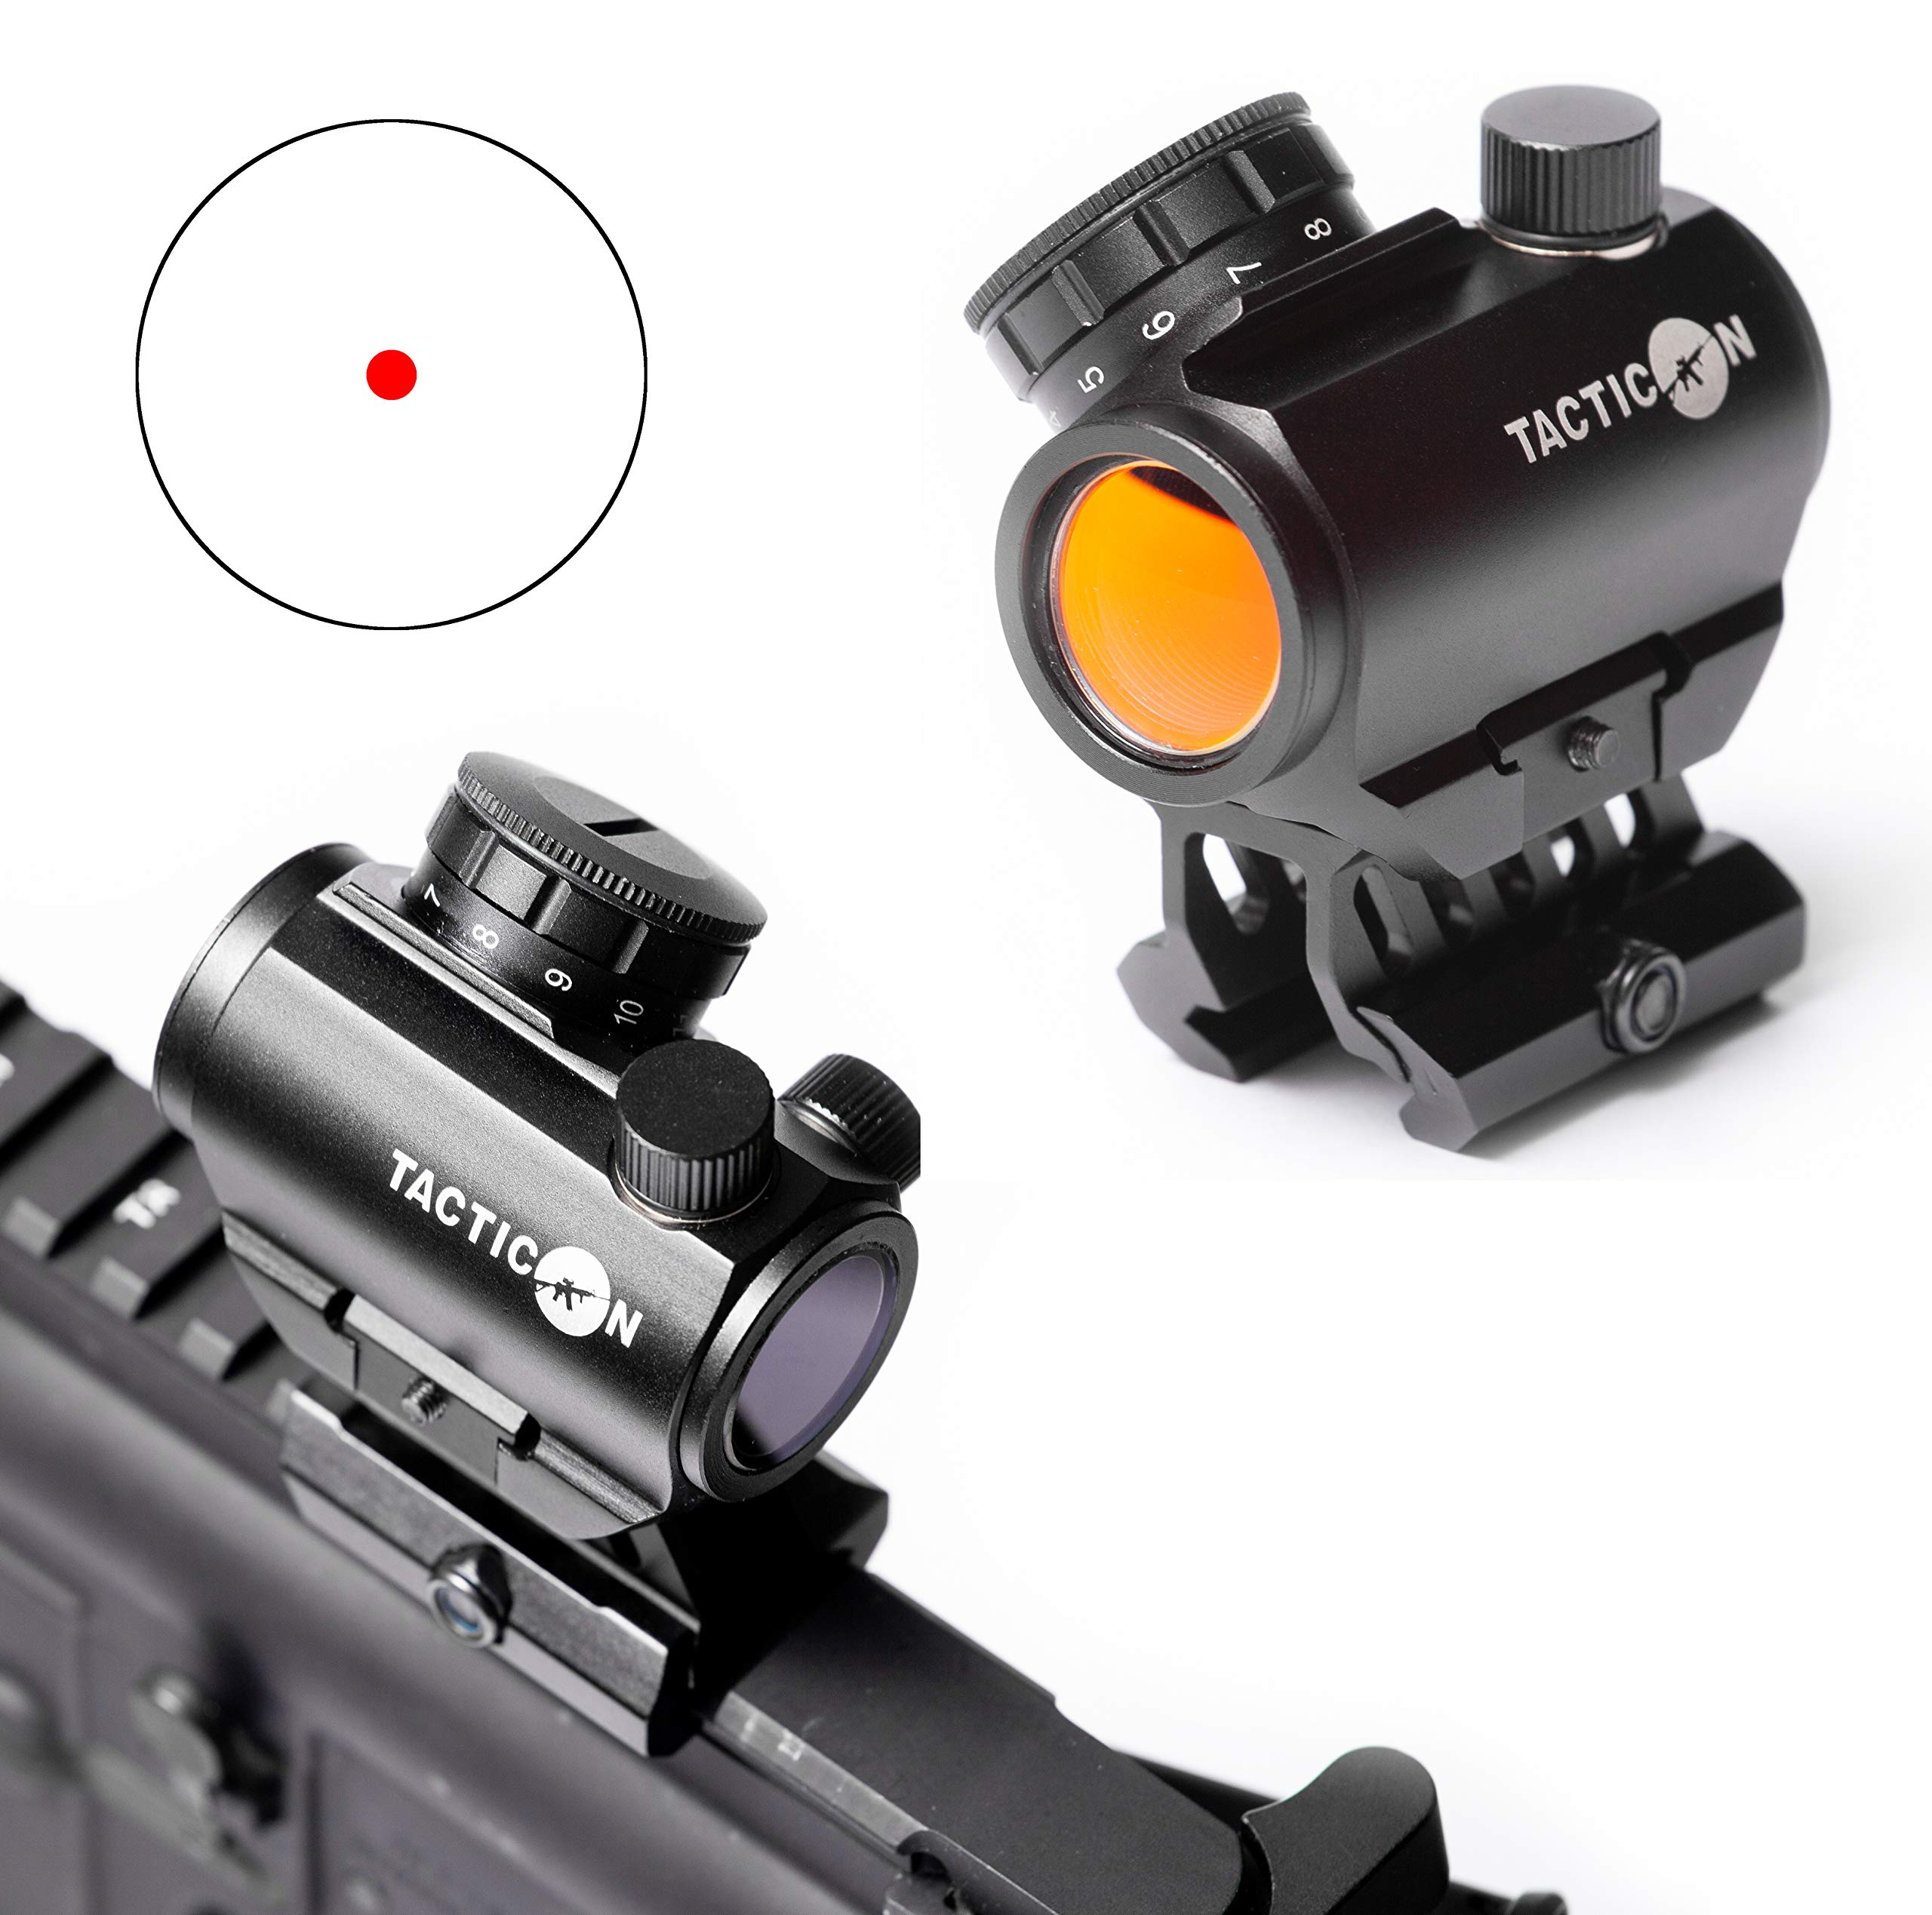 Predator V3 Micro Red Dot Sight   Combat Veteran Owned Company   45 Degree Offset Mount and Riser Mount Included   Reflex Rifle Optic With 11 Adjustable Brightness Settings   Reddot Gun Scope by Tacticon